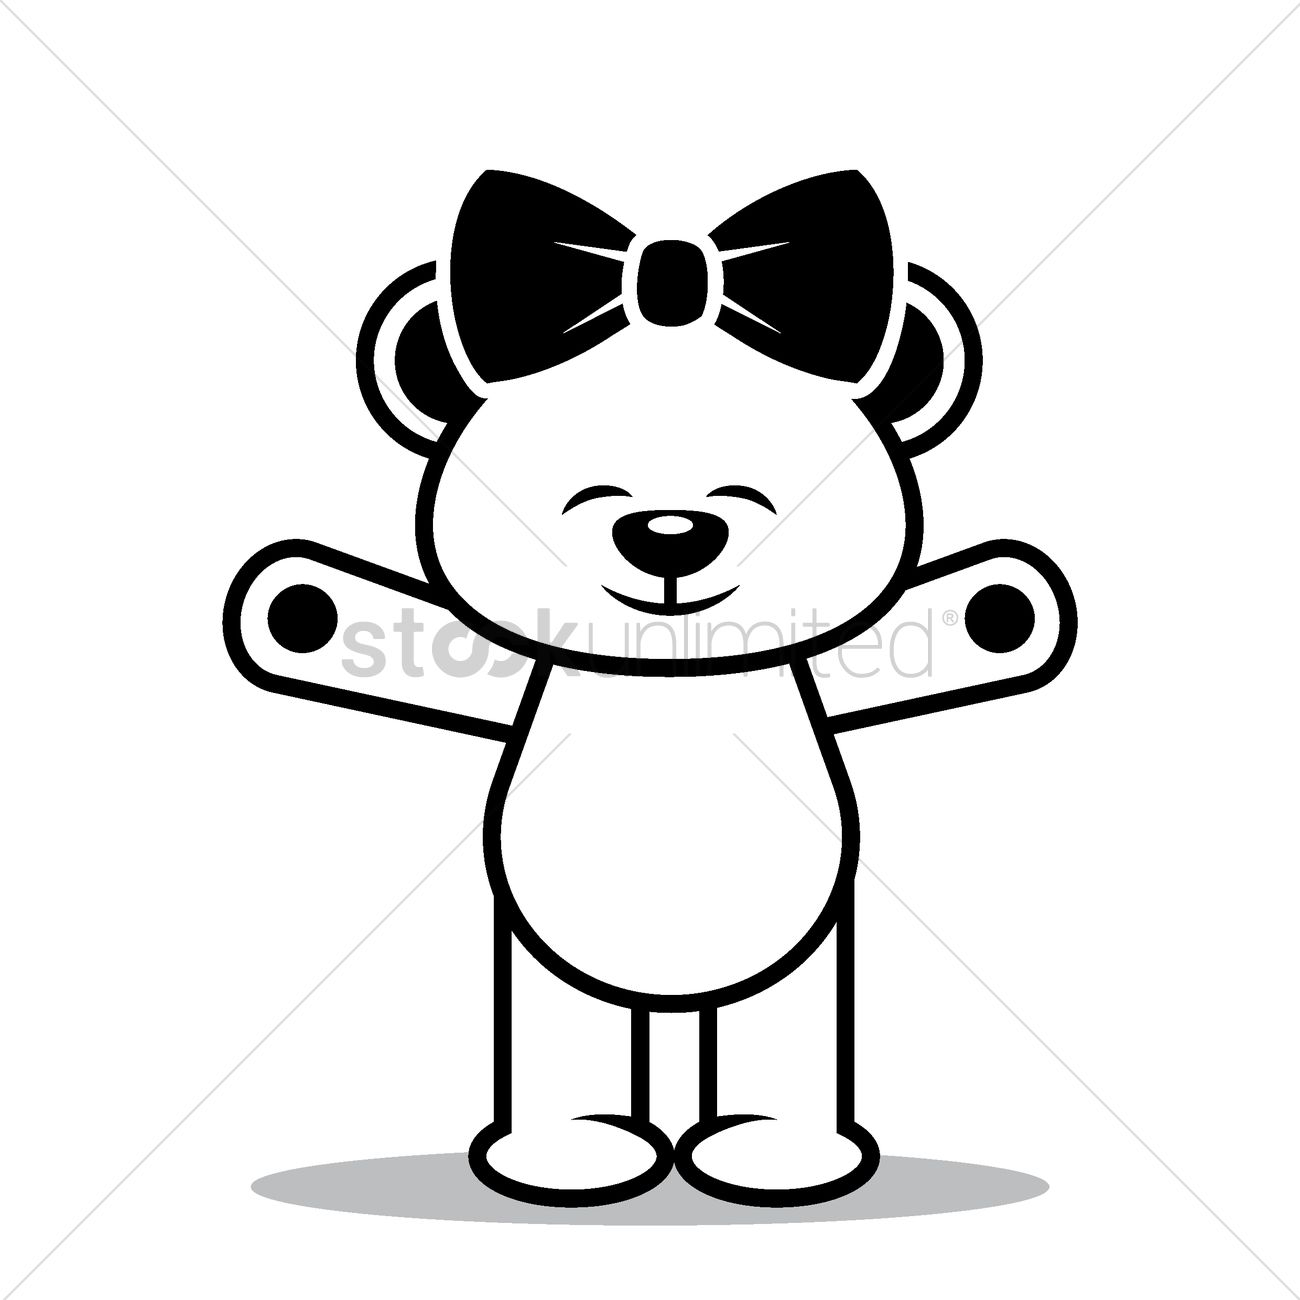 Hands Raised Teddy Bear Vector Image